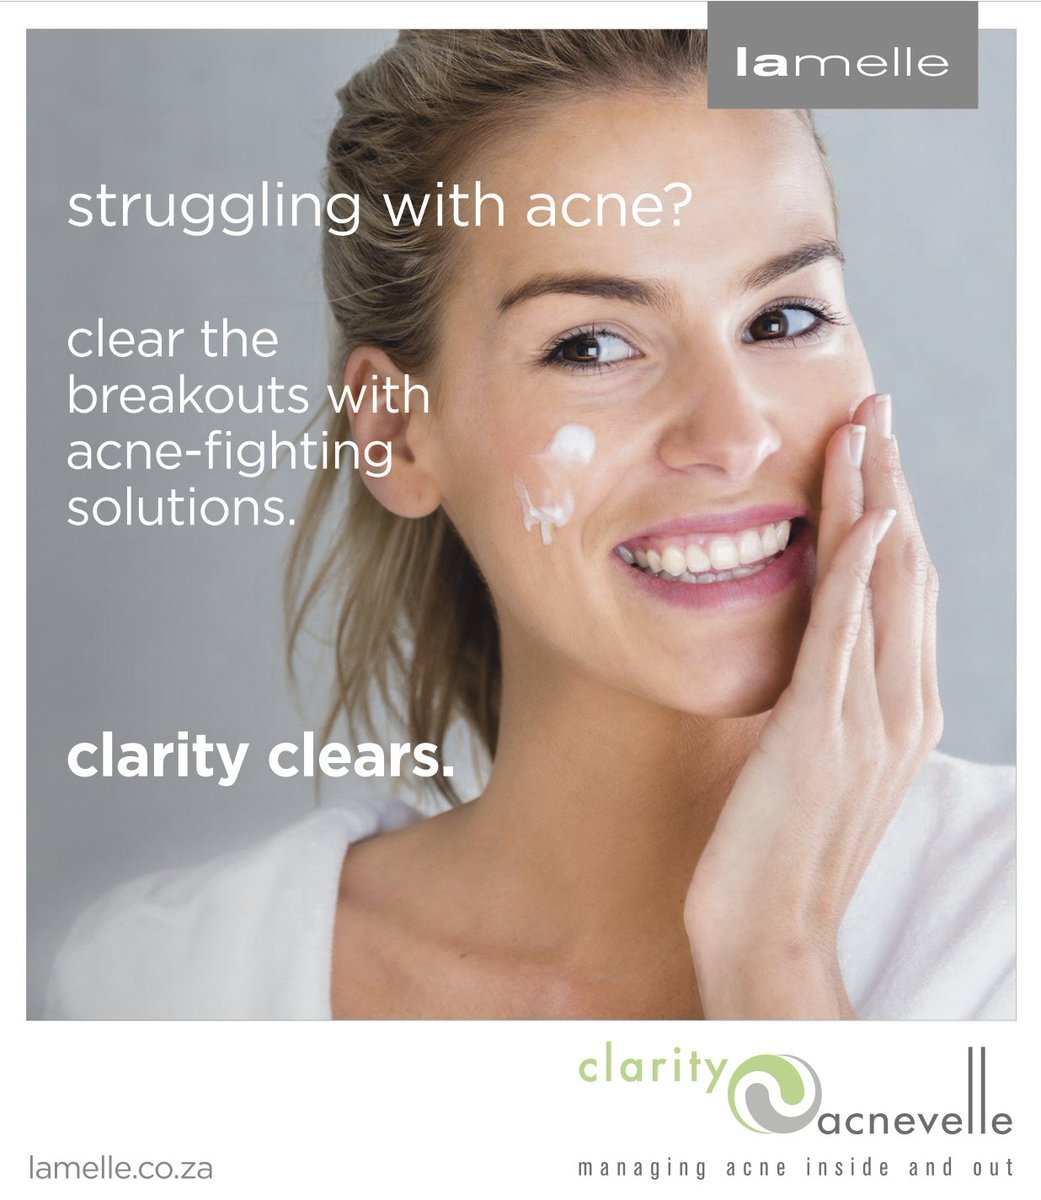 The struggle is real! Get over the struggle now with Clarity. #ClarityClears.